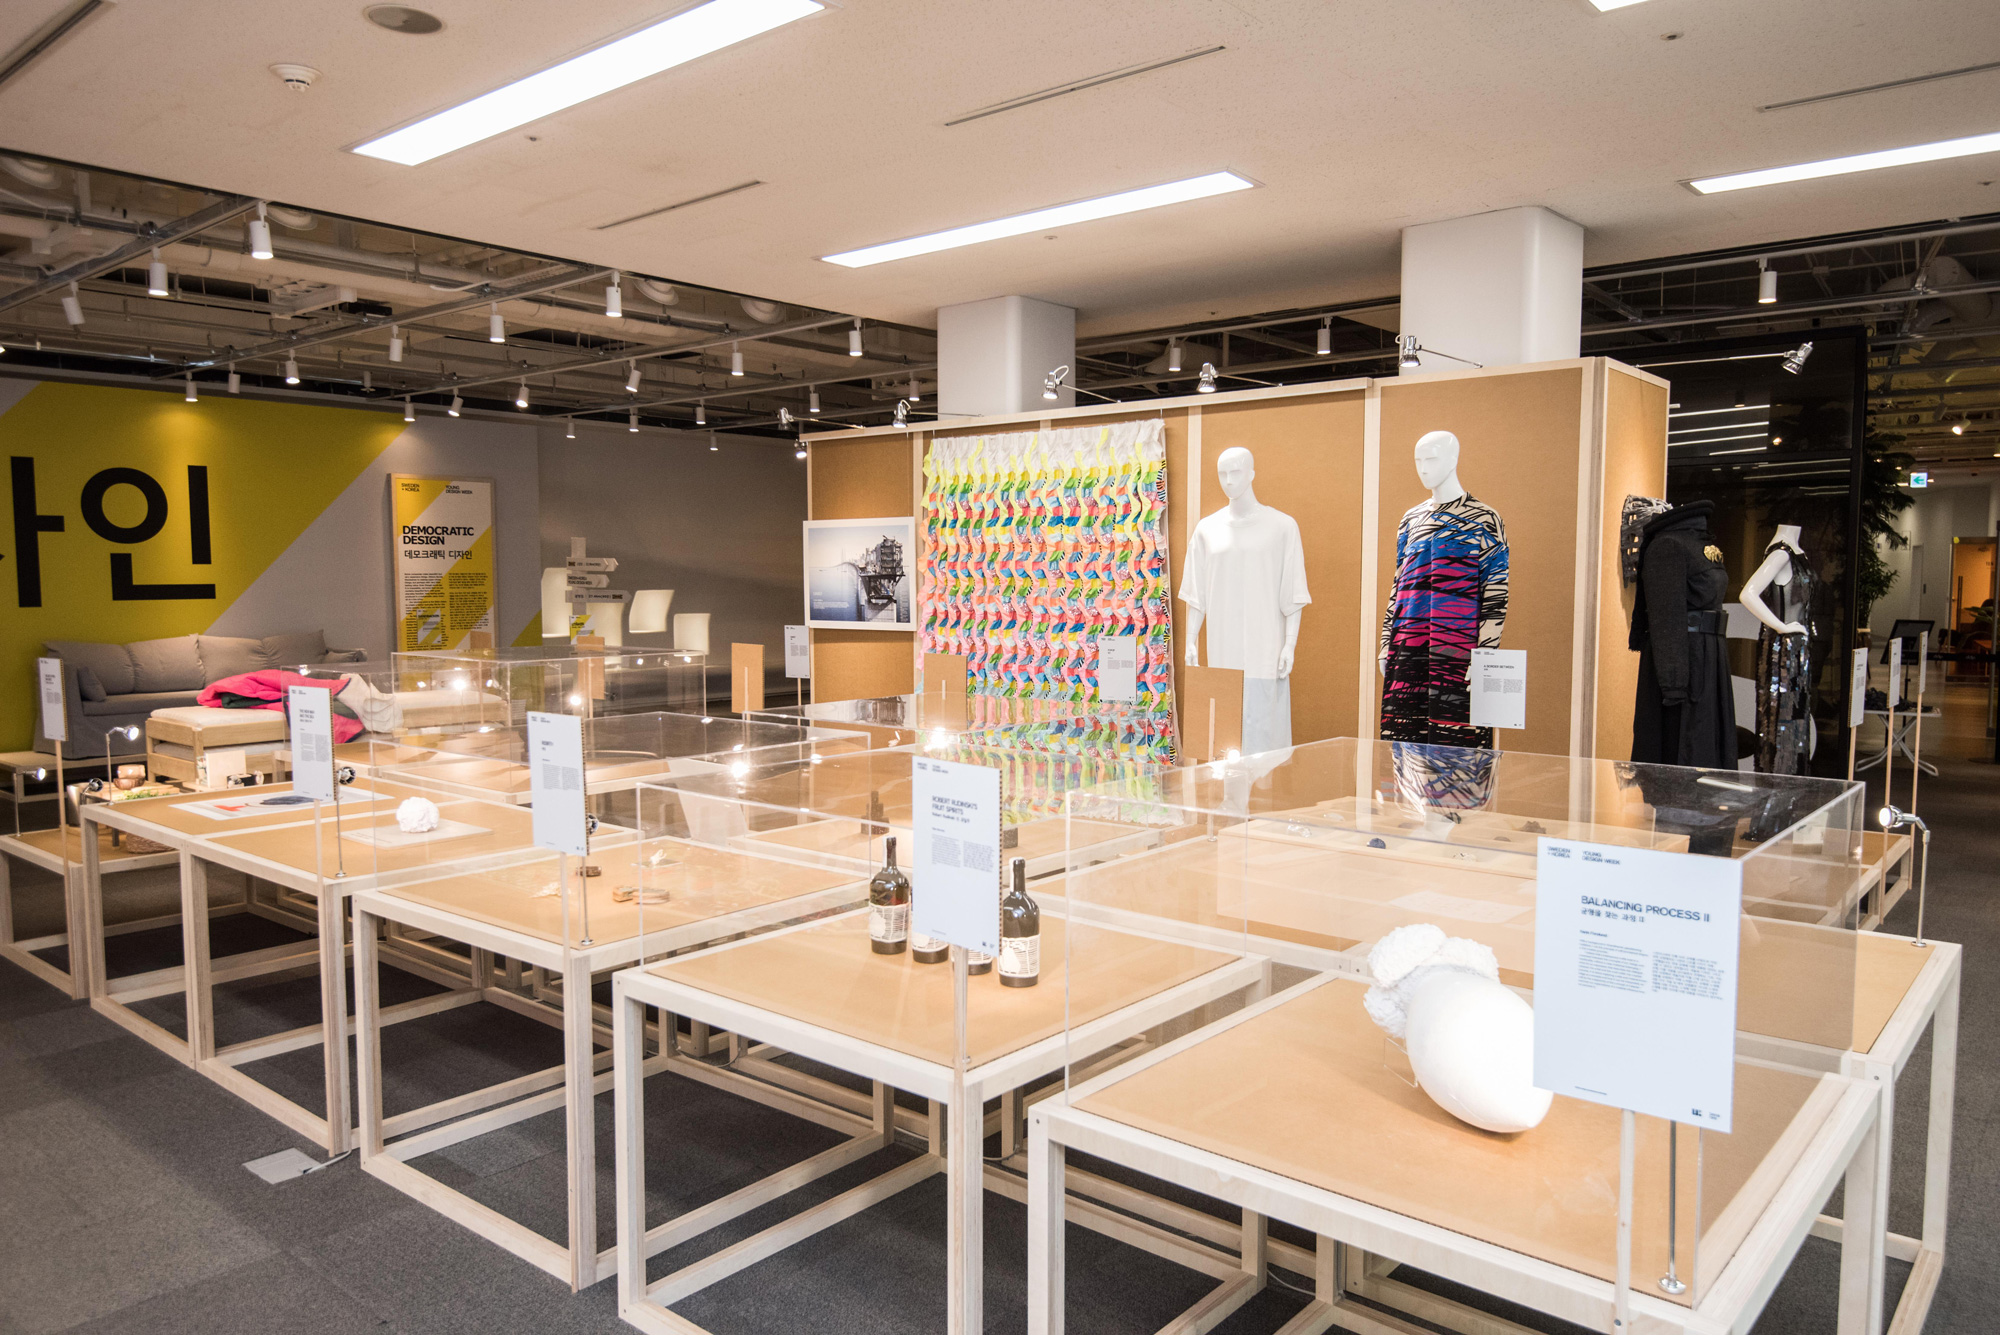 An exhibition space with displays of garments and household items.